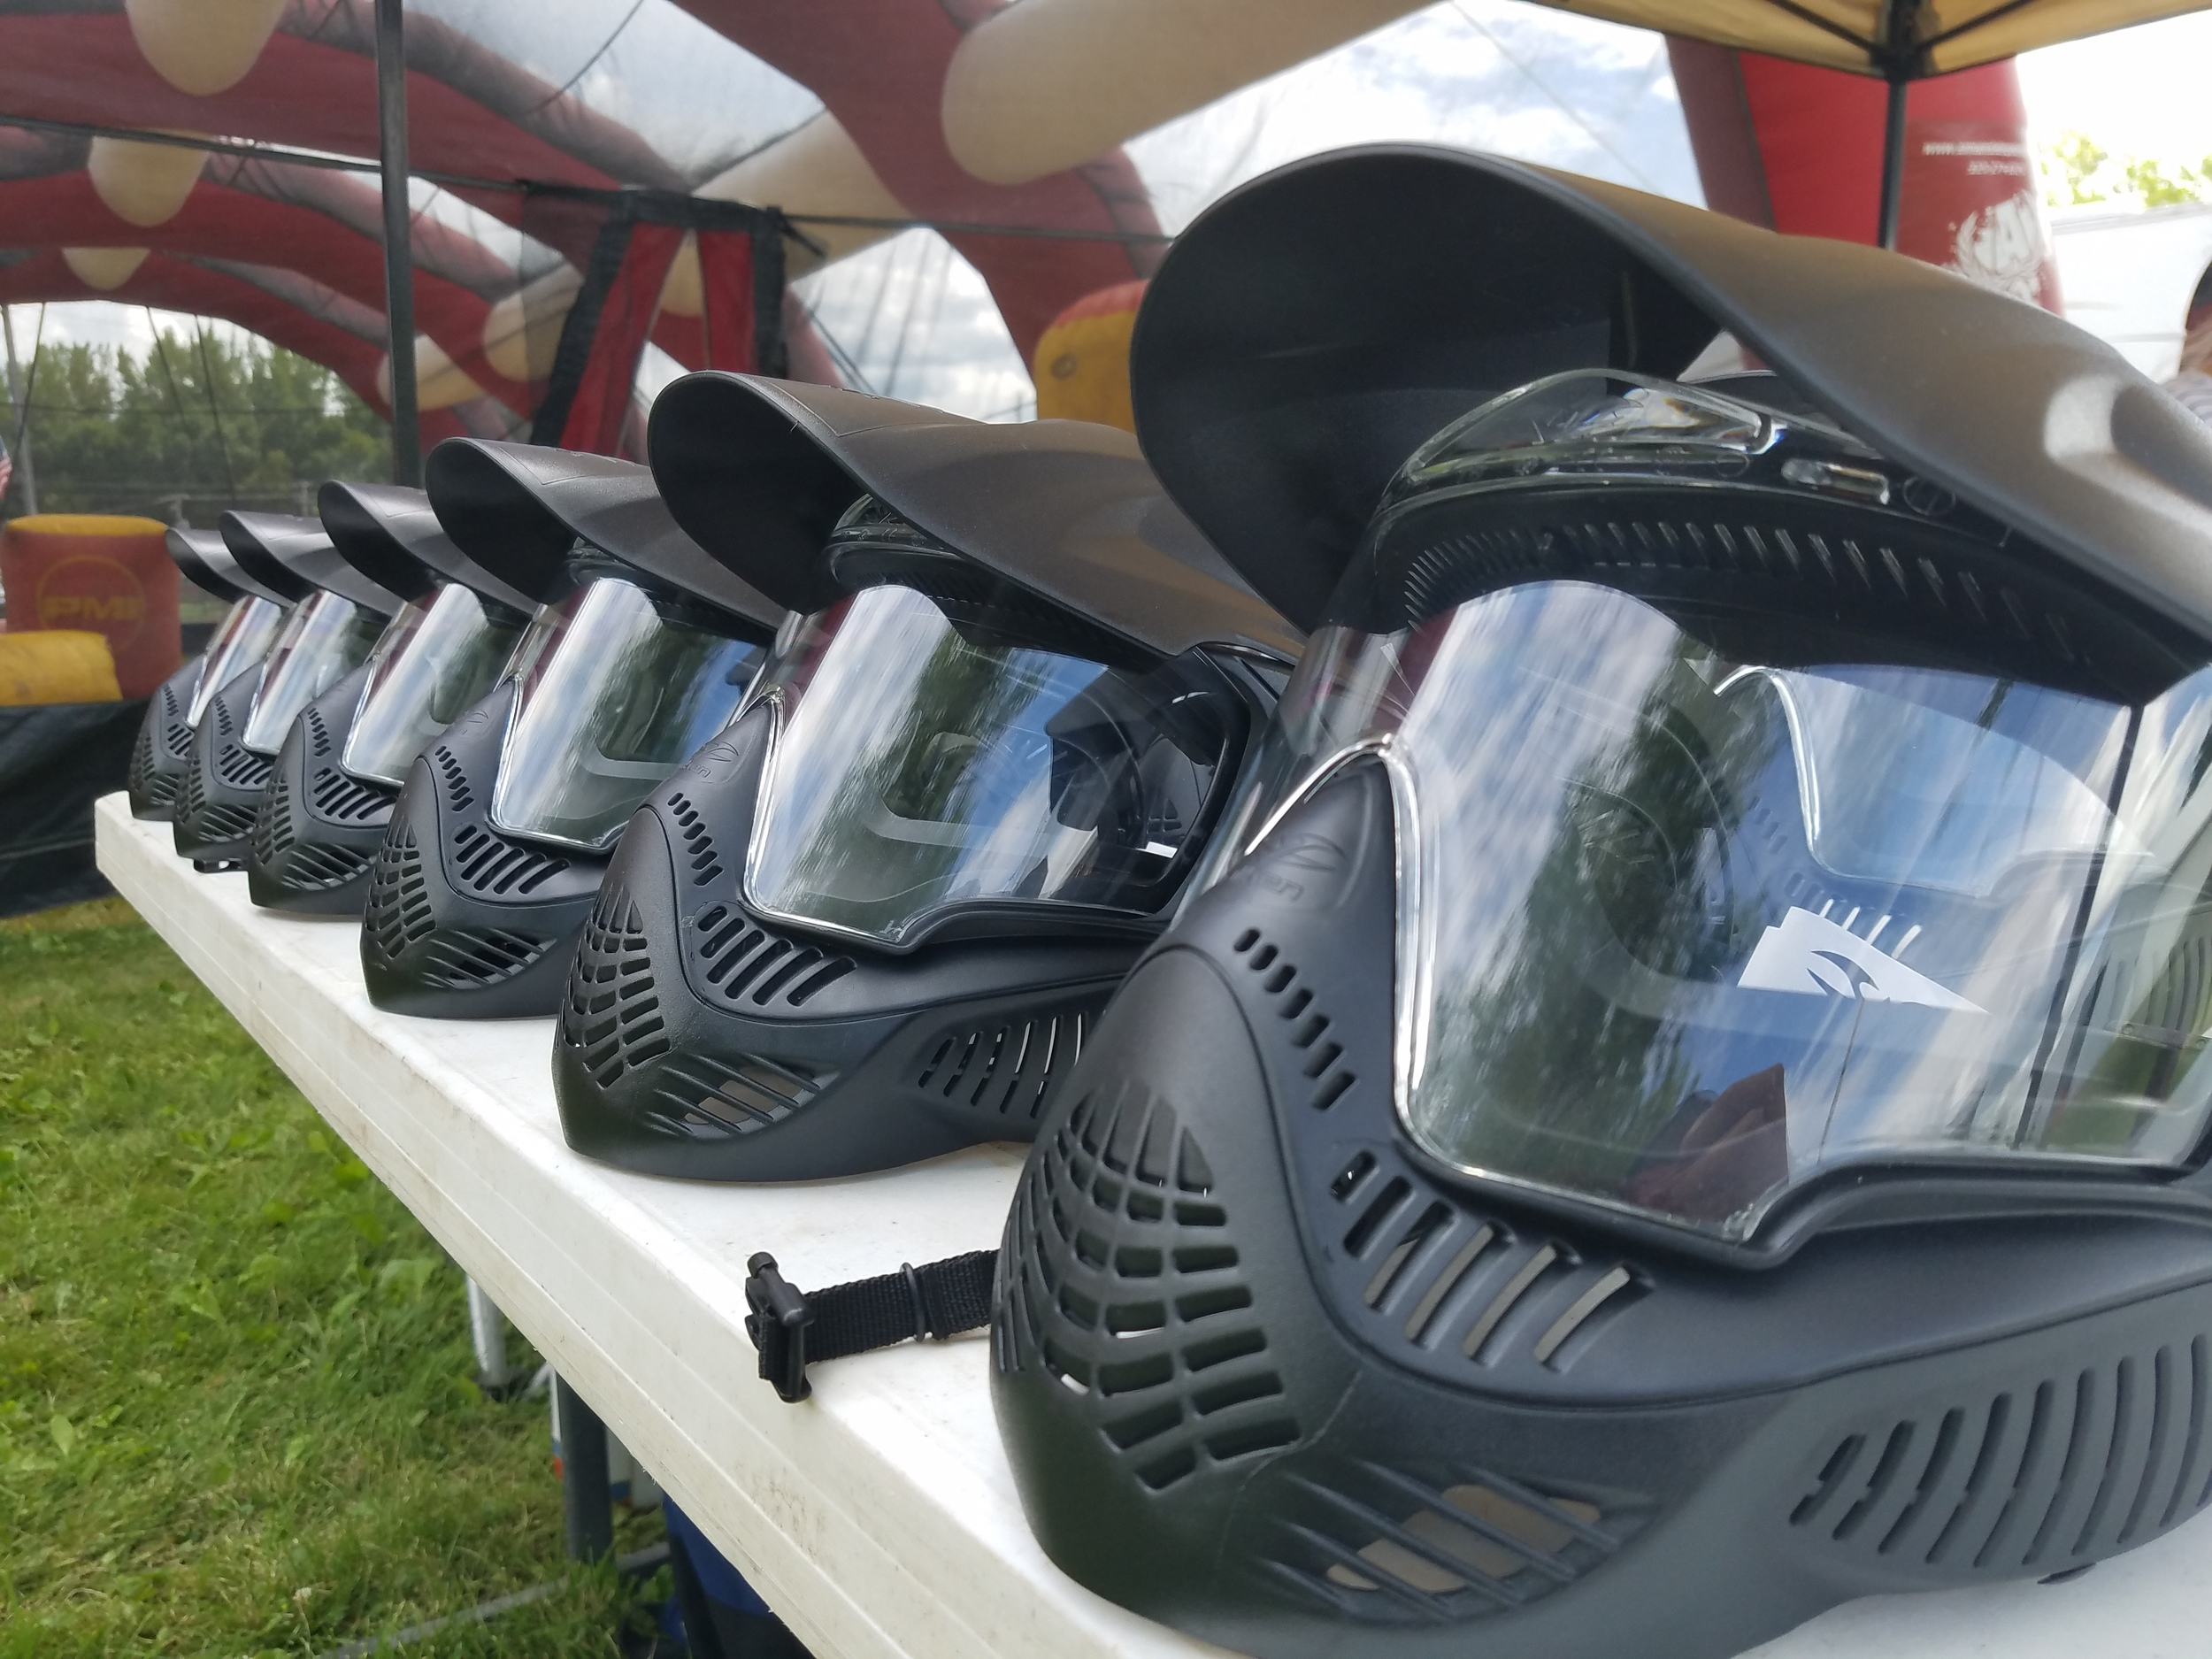 Each participant is provided FULL FACE protection prior to entering the arena